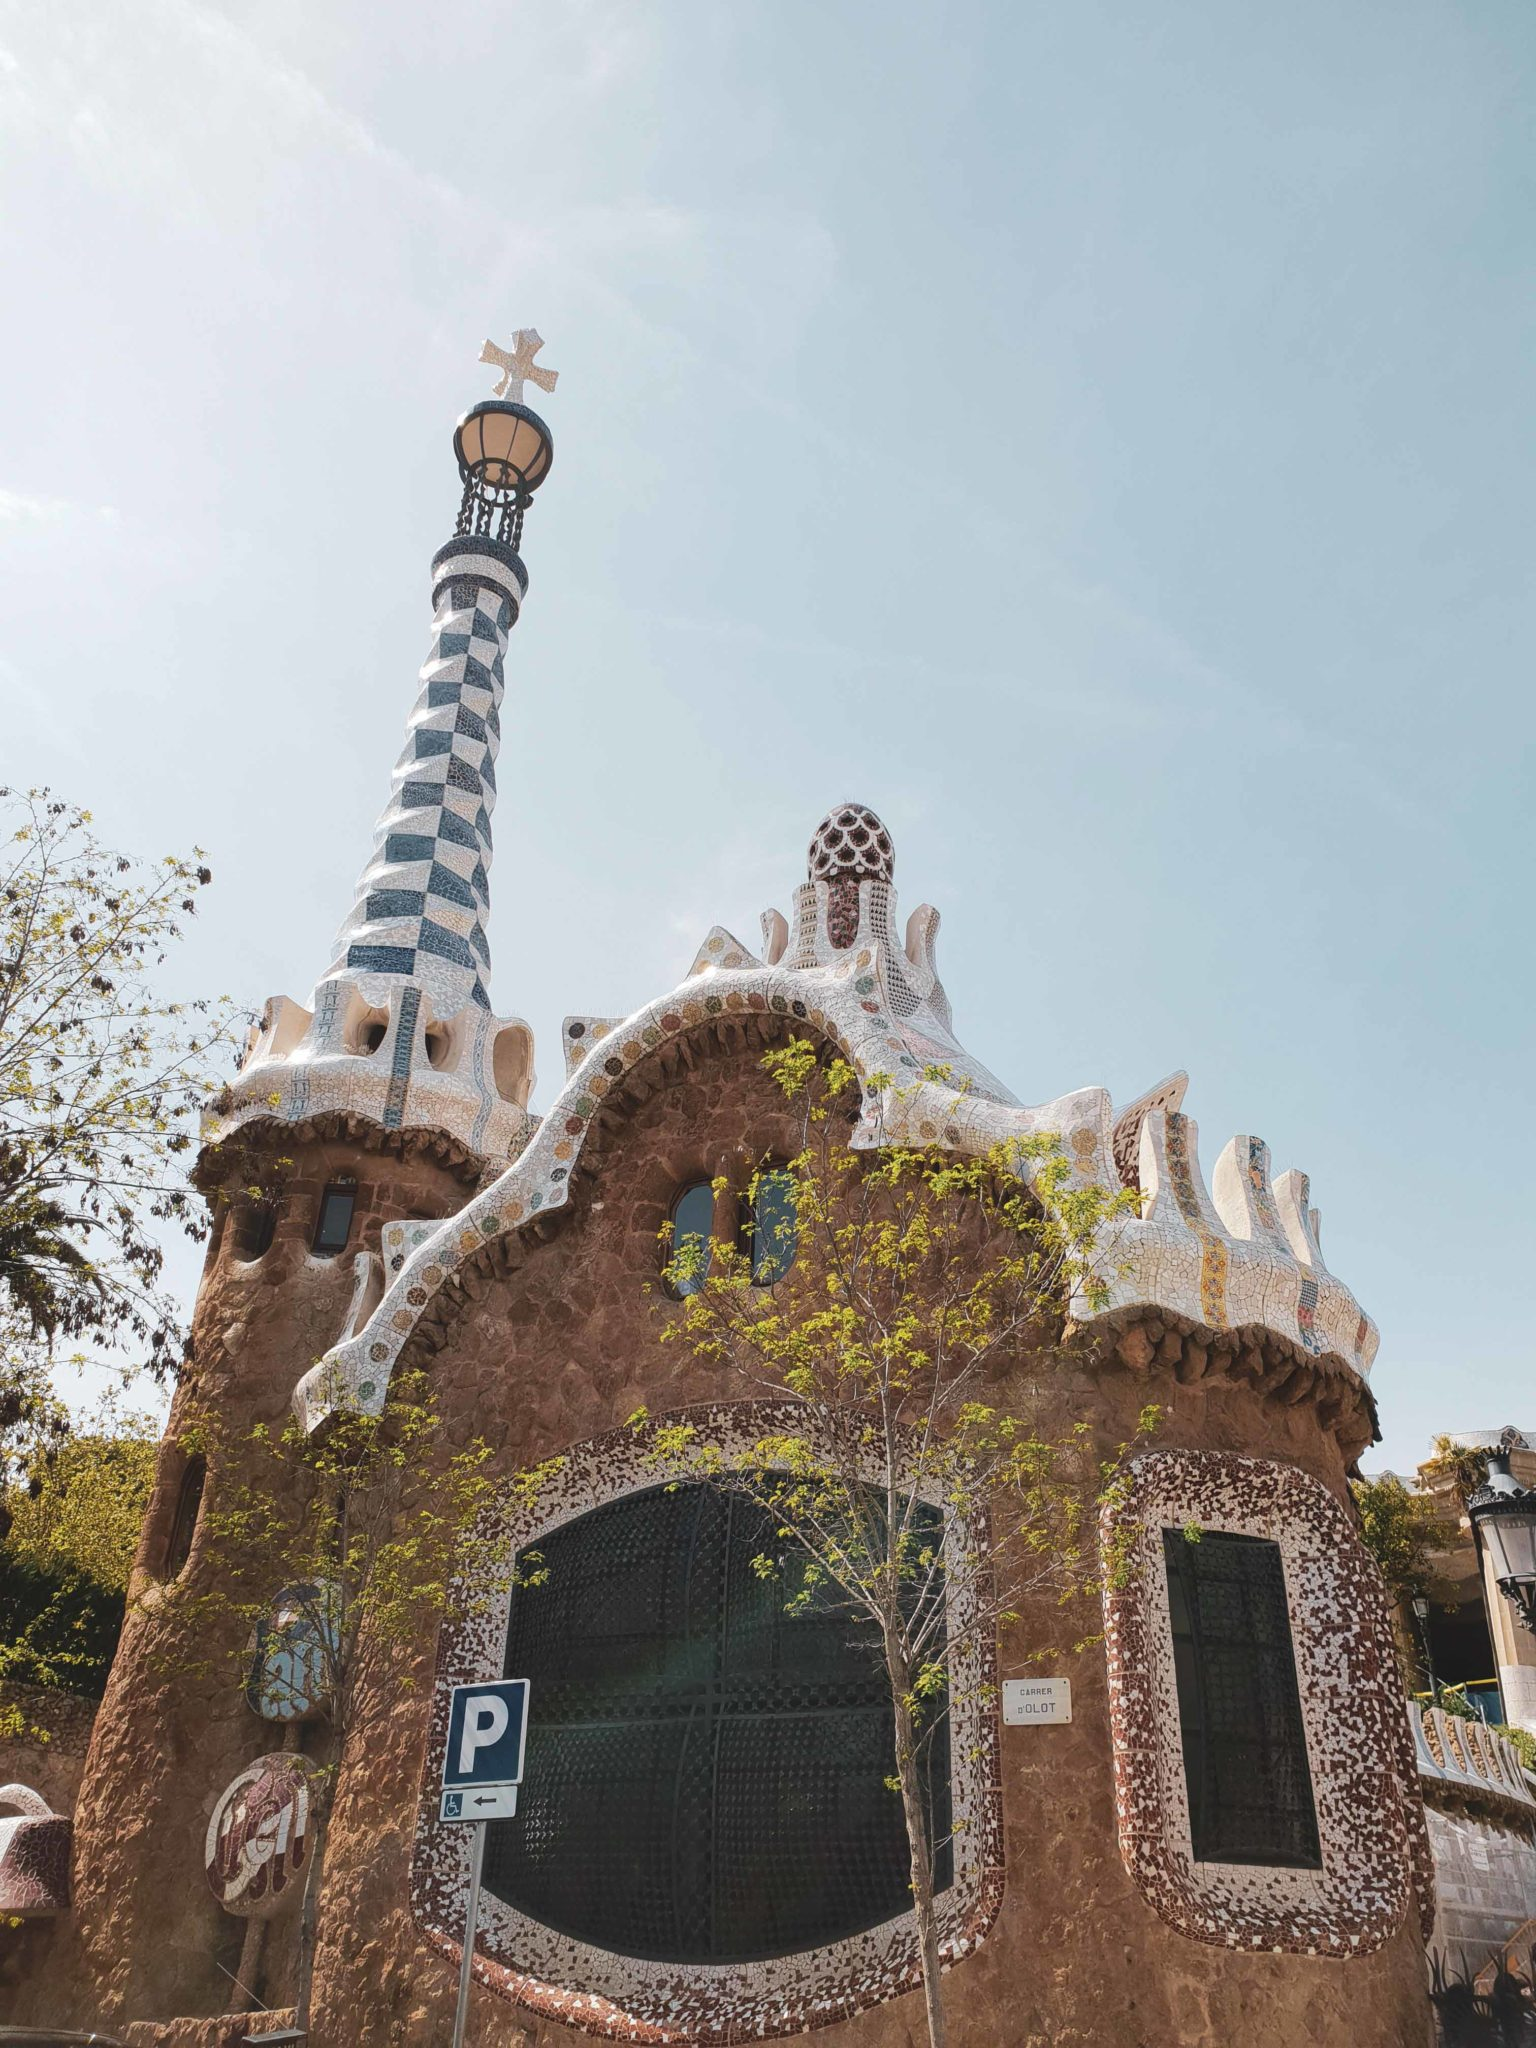 Barcelona travel guide by Michaella and Lina from Bulgarian lifestyle blog Quite a Looker / Park Güell